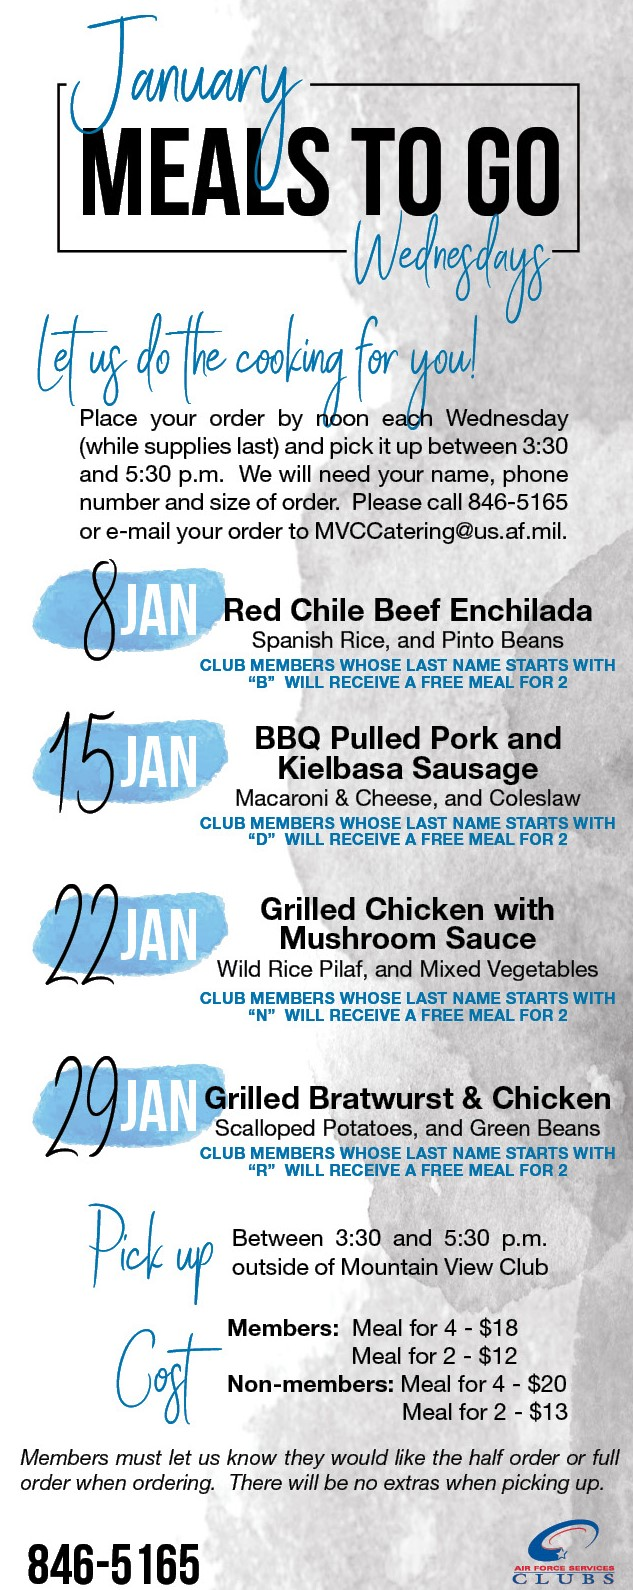 January Meals to Go at the Mountain View Club